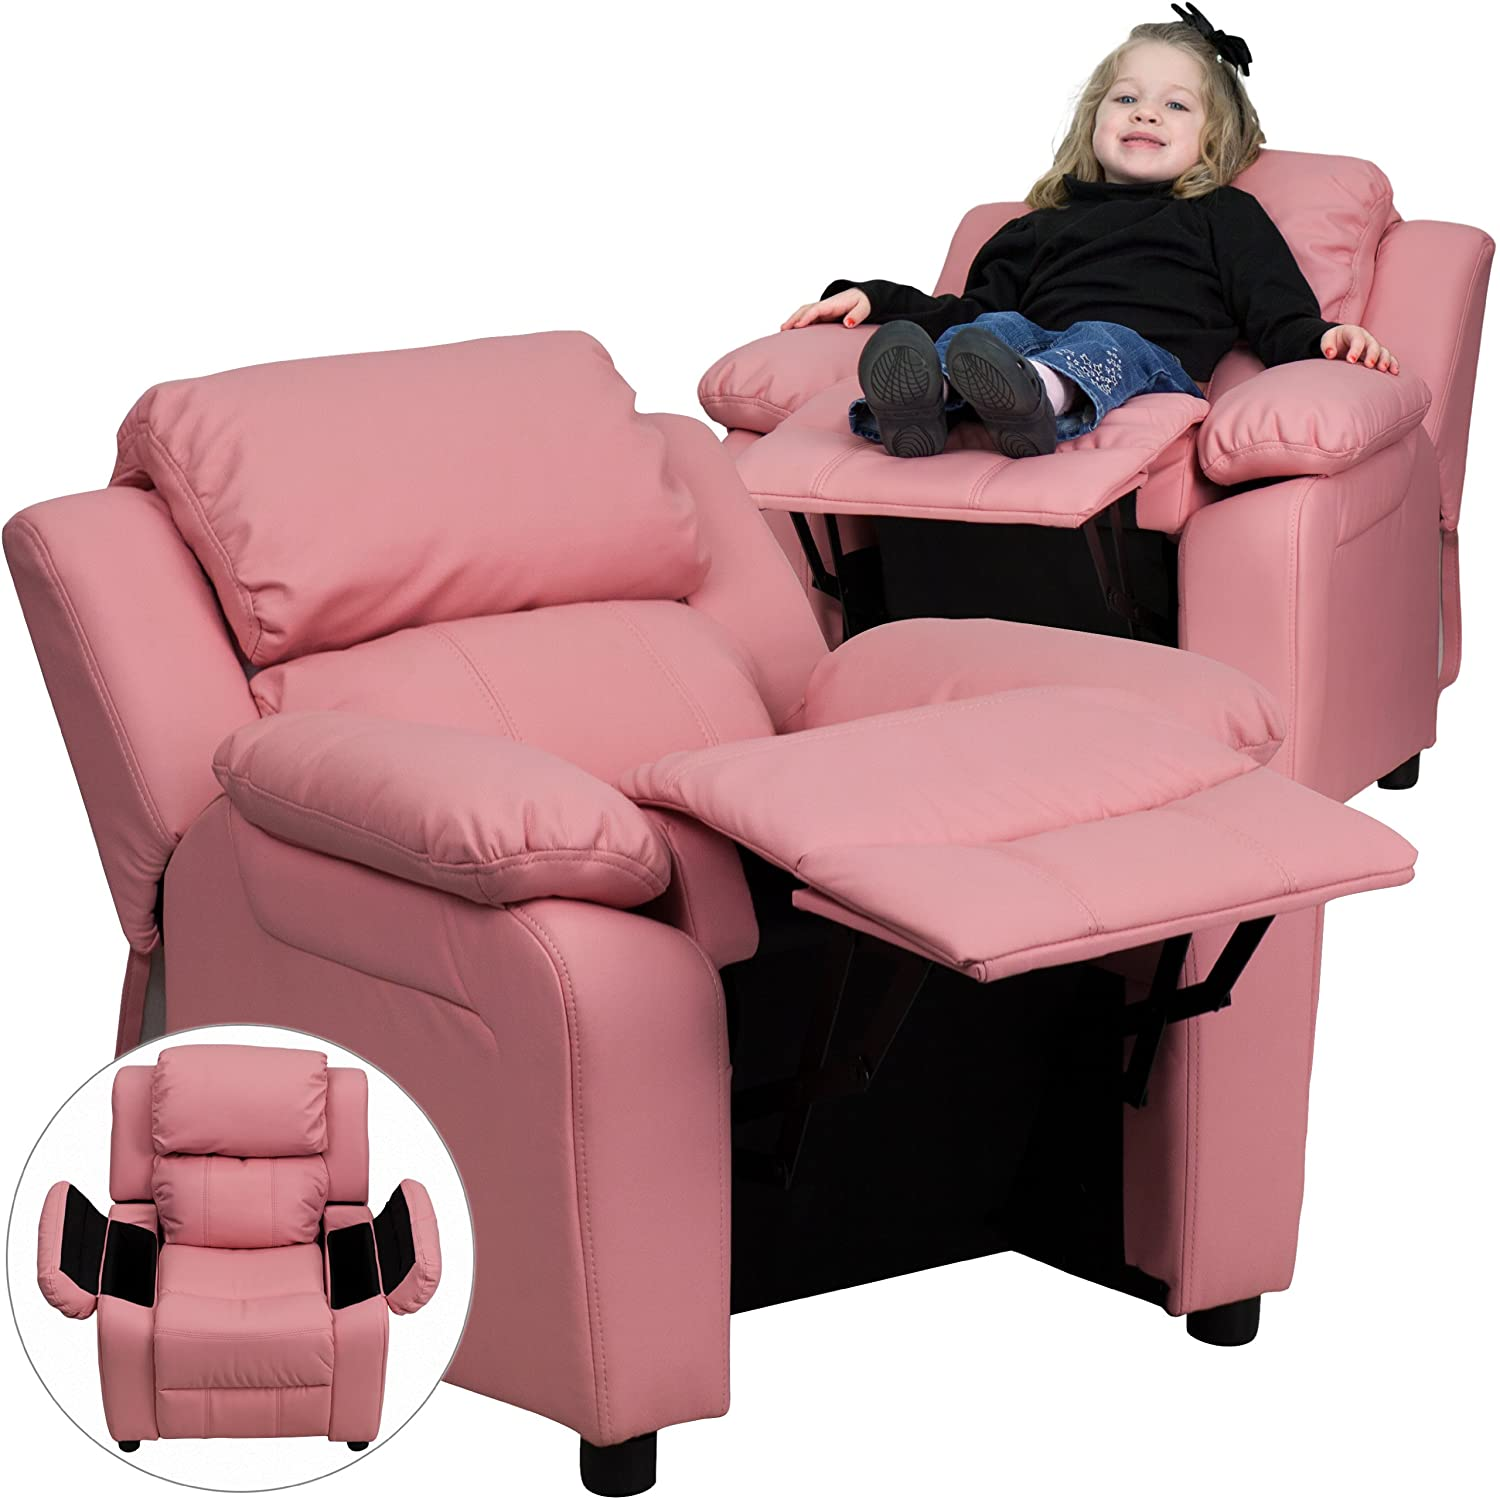 Amazon.com Flash Furniture Deluxe Padded Contemporary Pink Vinyl Kids Recliner with Storage Arms Kitchen u0026 Dining  sc 1 st  Amazon.com & Amazon.com: Flash Furniture Deluxe Padded Contemporary Pink Vinyl ... islam-shia.org